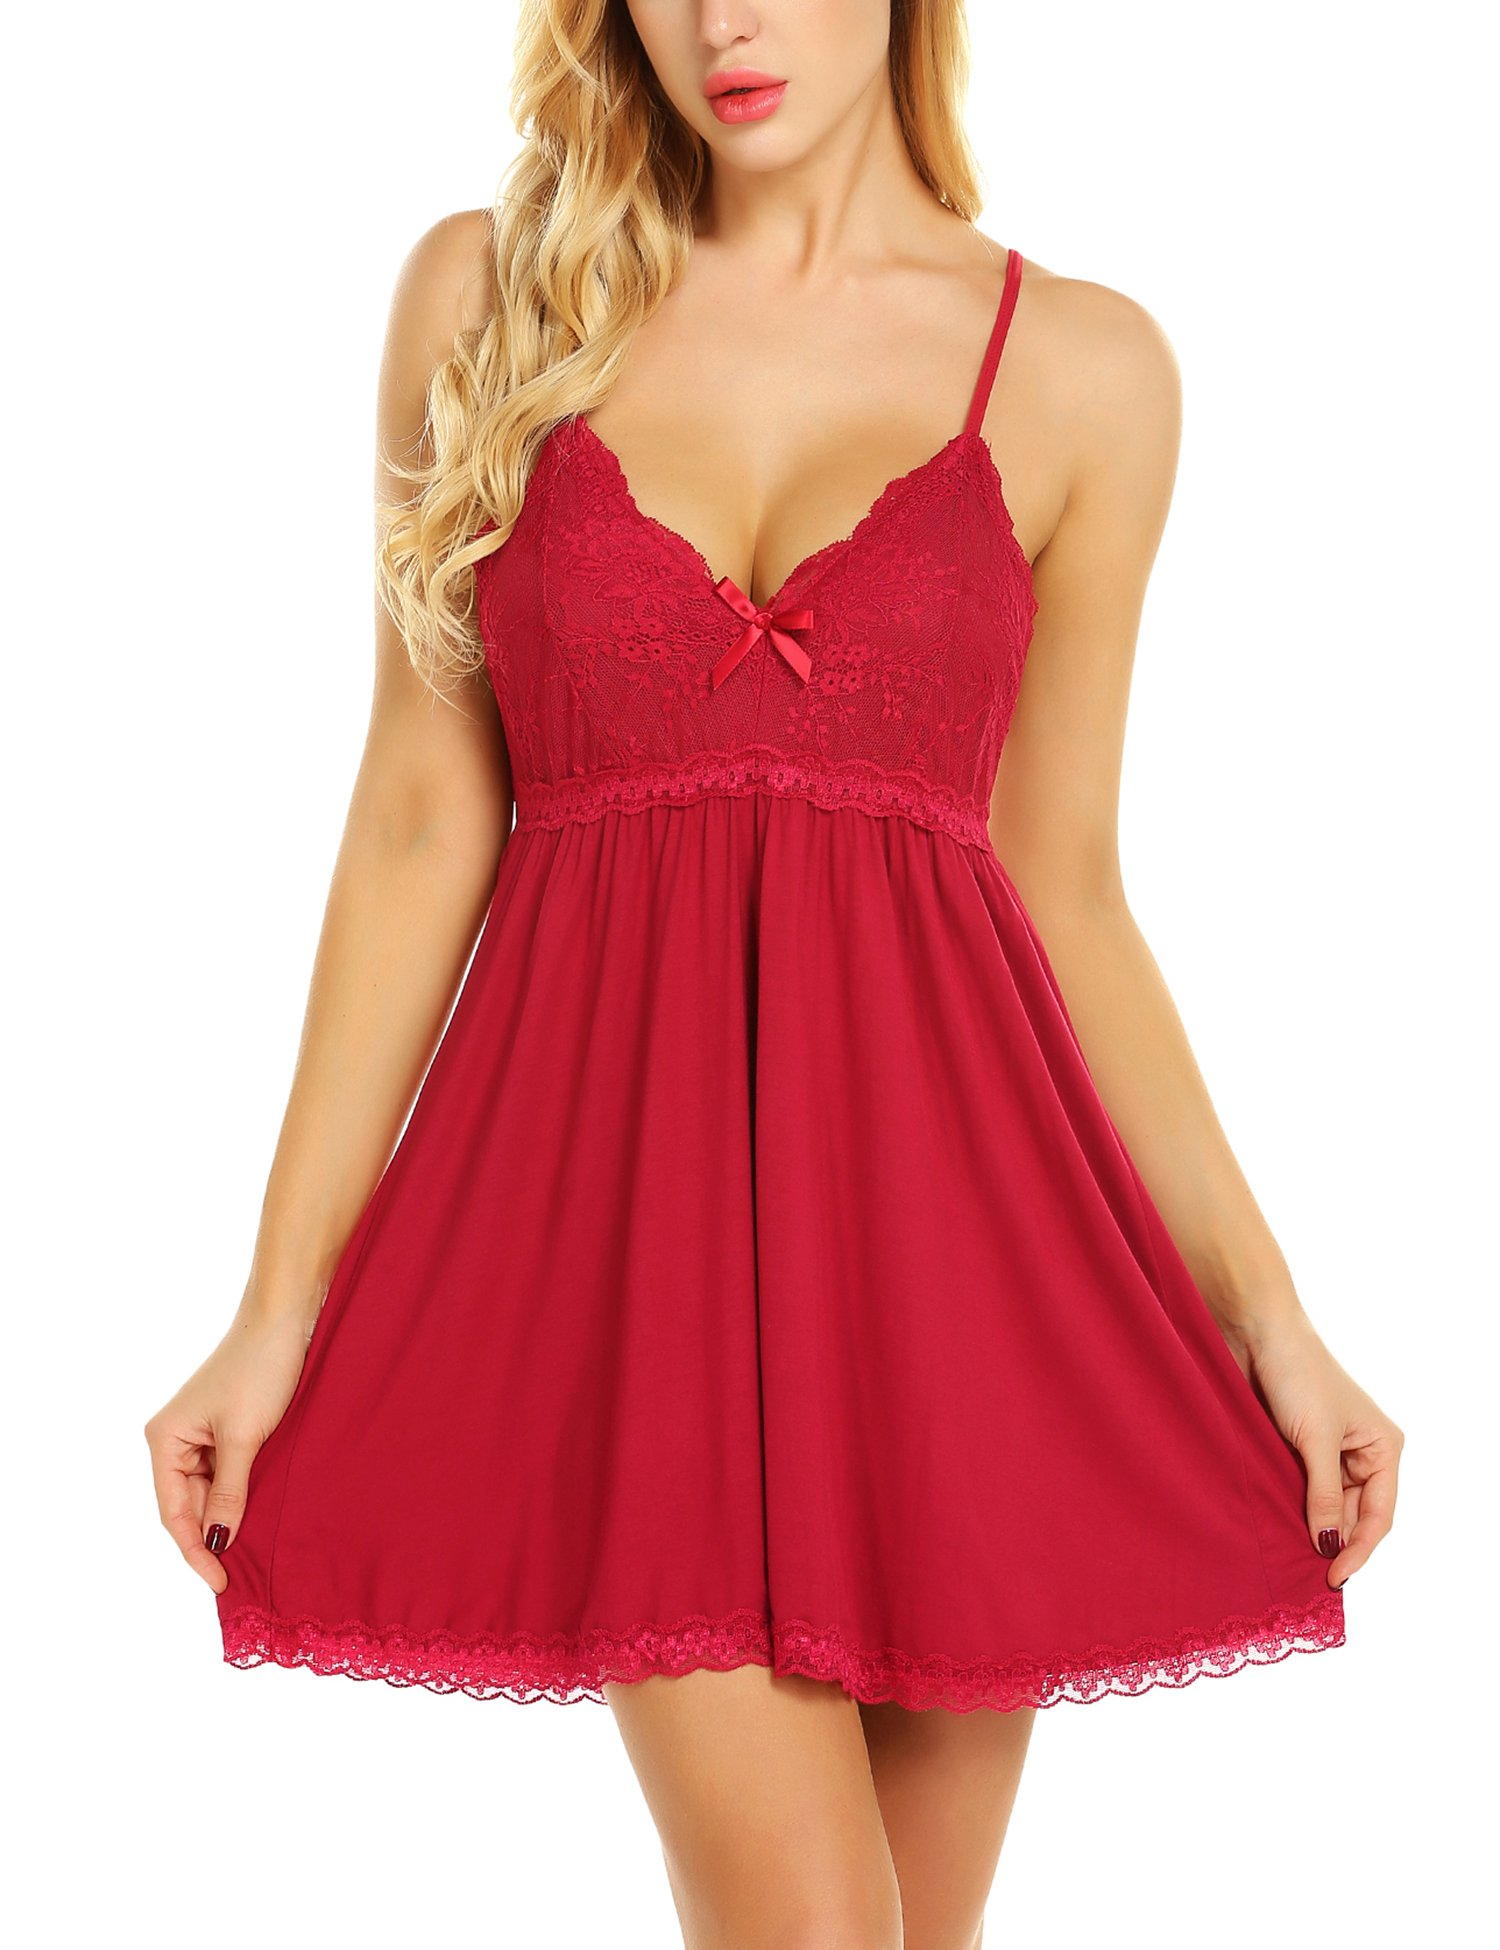 Avrilove Lingerie for Women Floral Lace Straps Chemise Babydolls Sexy Sleepwear (Red, XL)